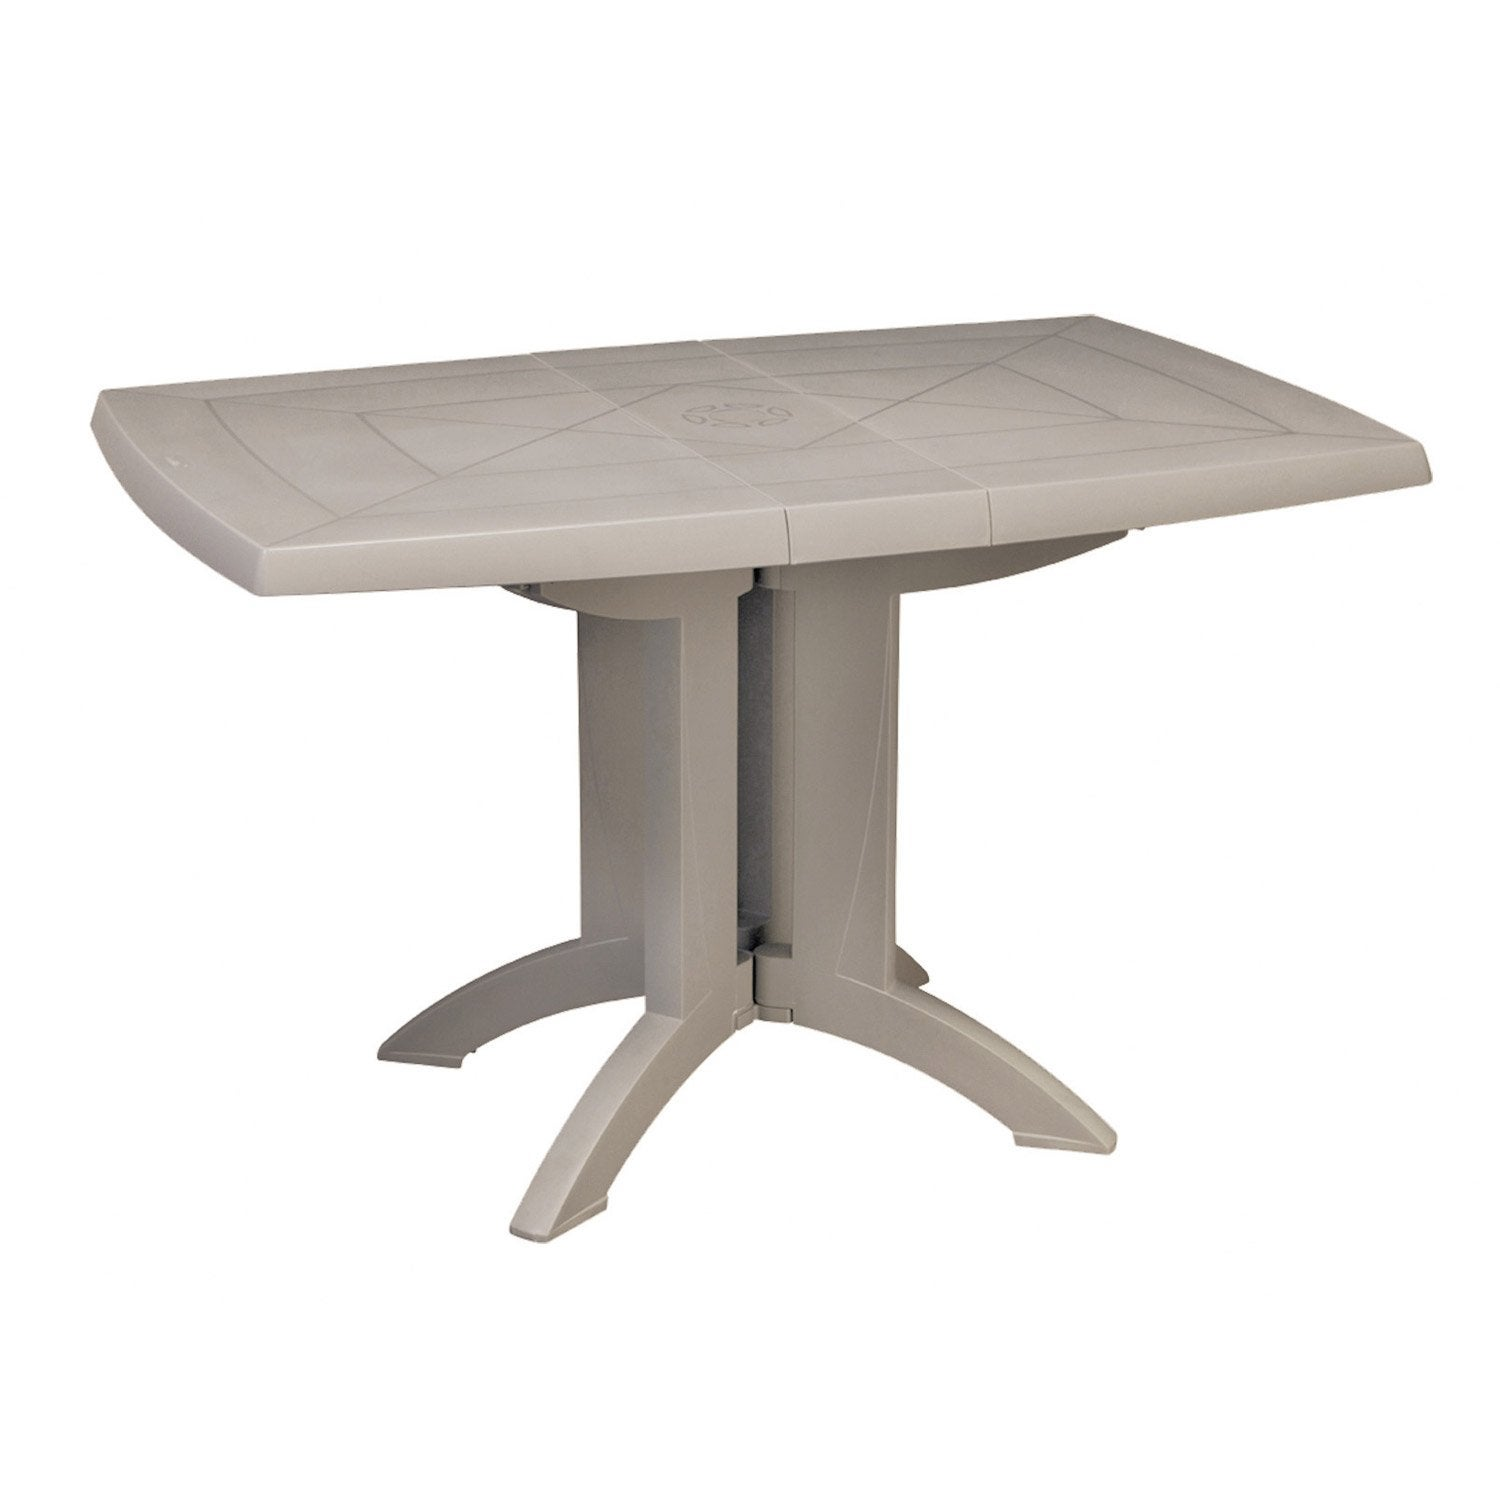 Table jardin 4 personnes maison design for Table de cuisine pliante leroy merlin